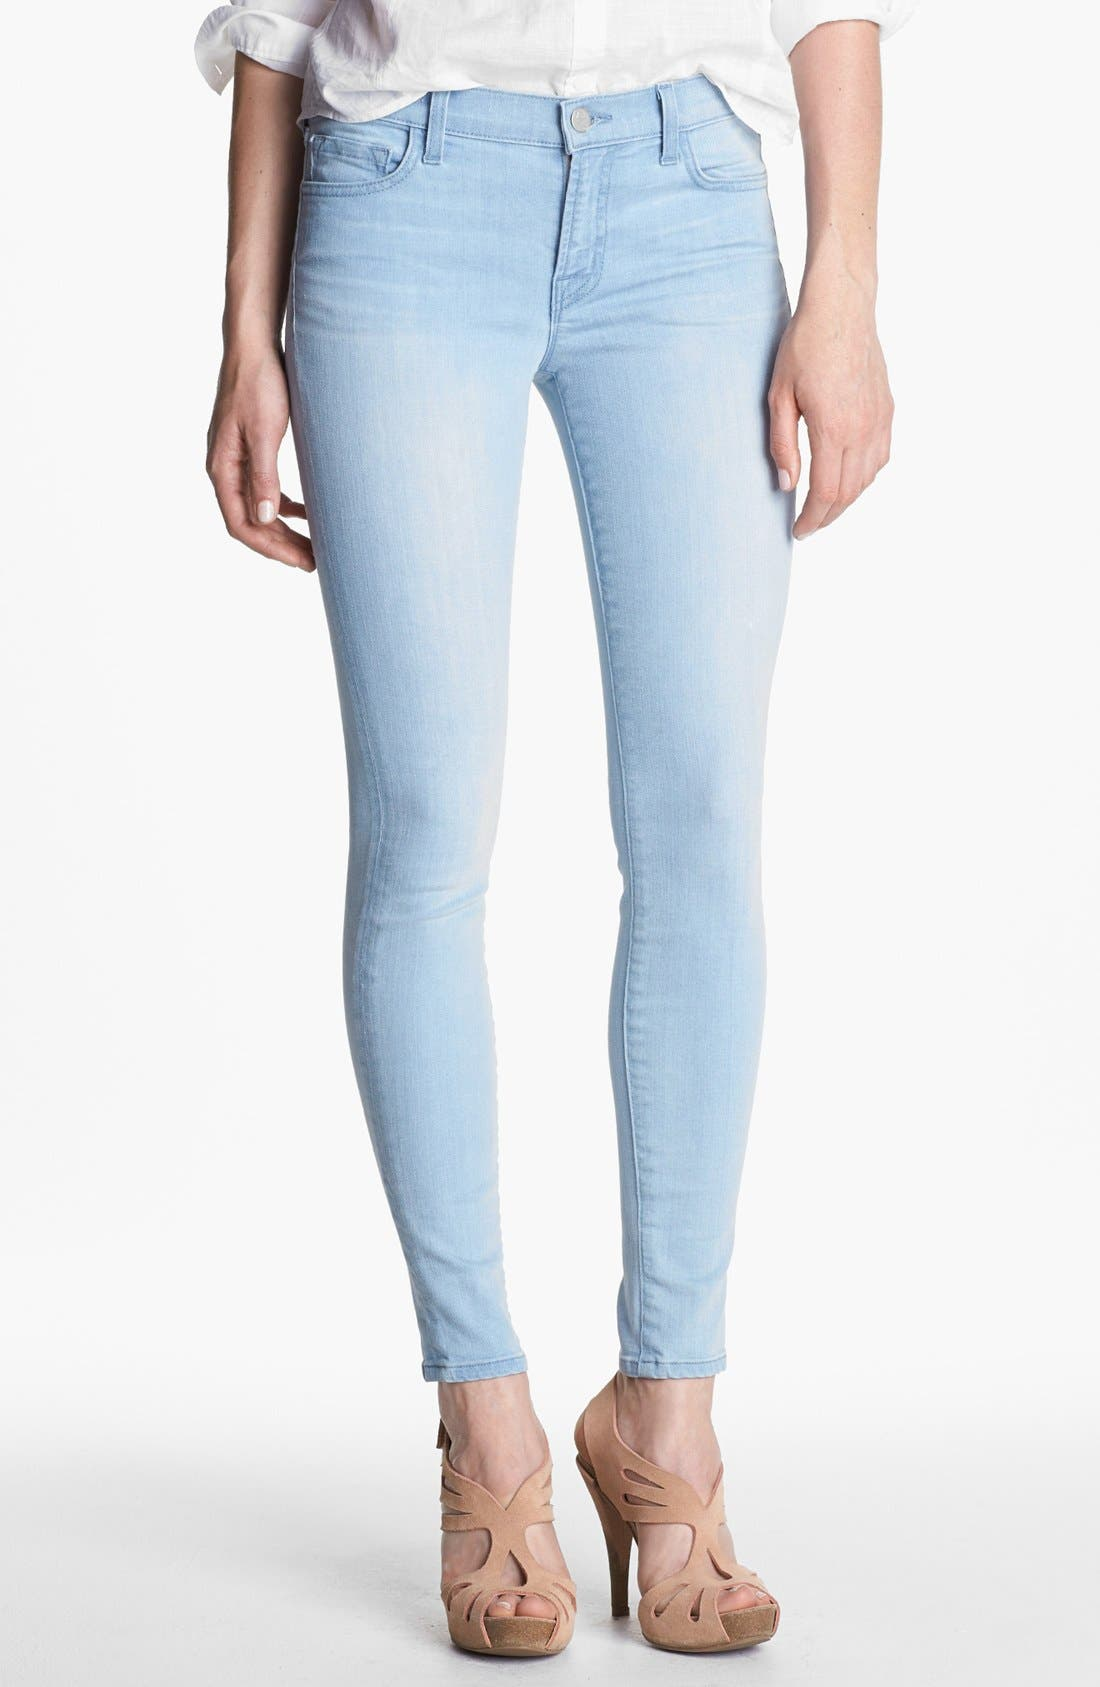 Alternate Image 1 Selected - J Brand '811' Mid-Rise Skinny Jeans (Journey)